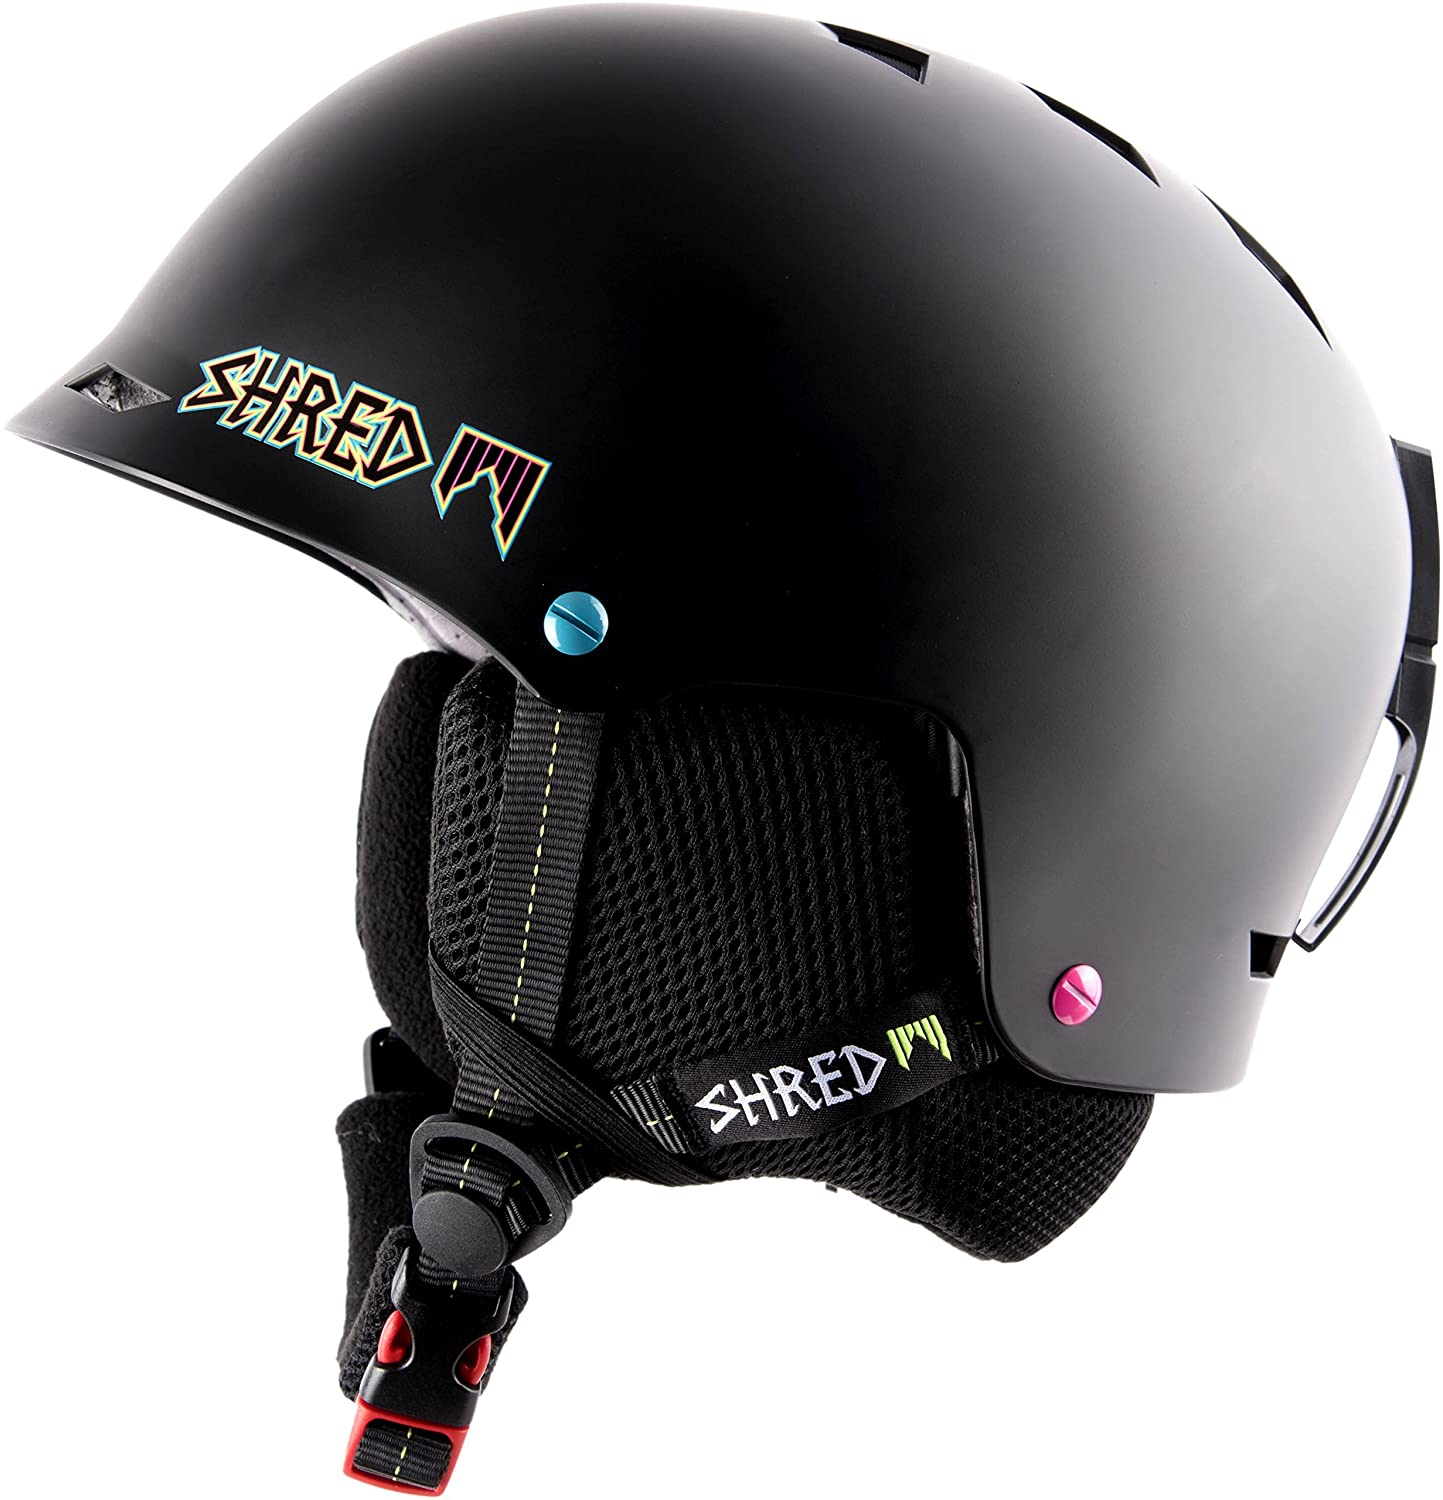 Amazon.com : Shred Ski Helmet, Snowboard Helmet, Half Brain Helmet, Half Shell, Shrasta, M/XL (57-61) : Sports & Outdoors